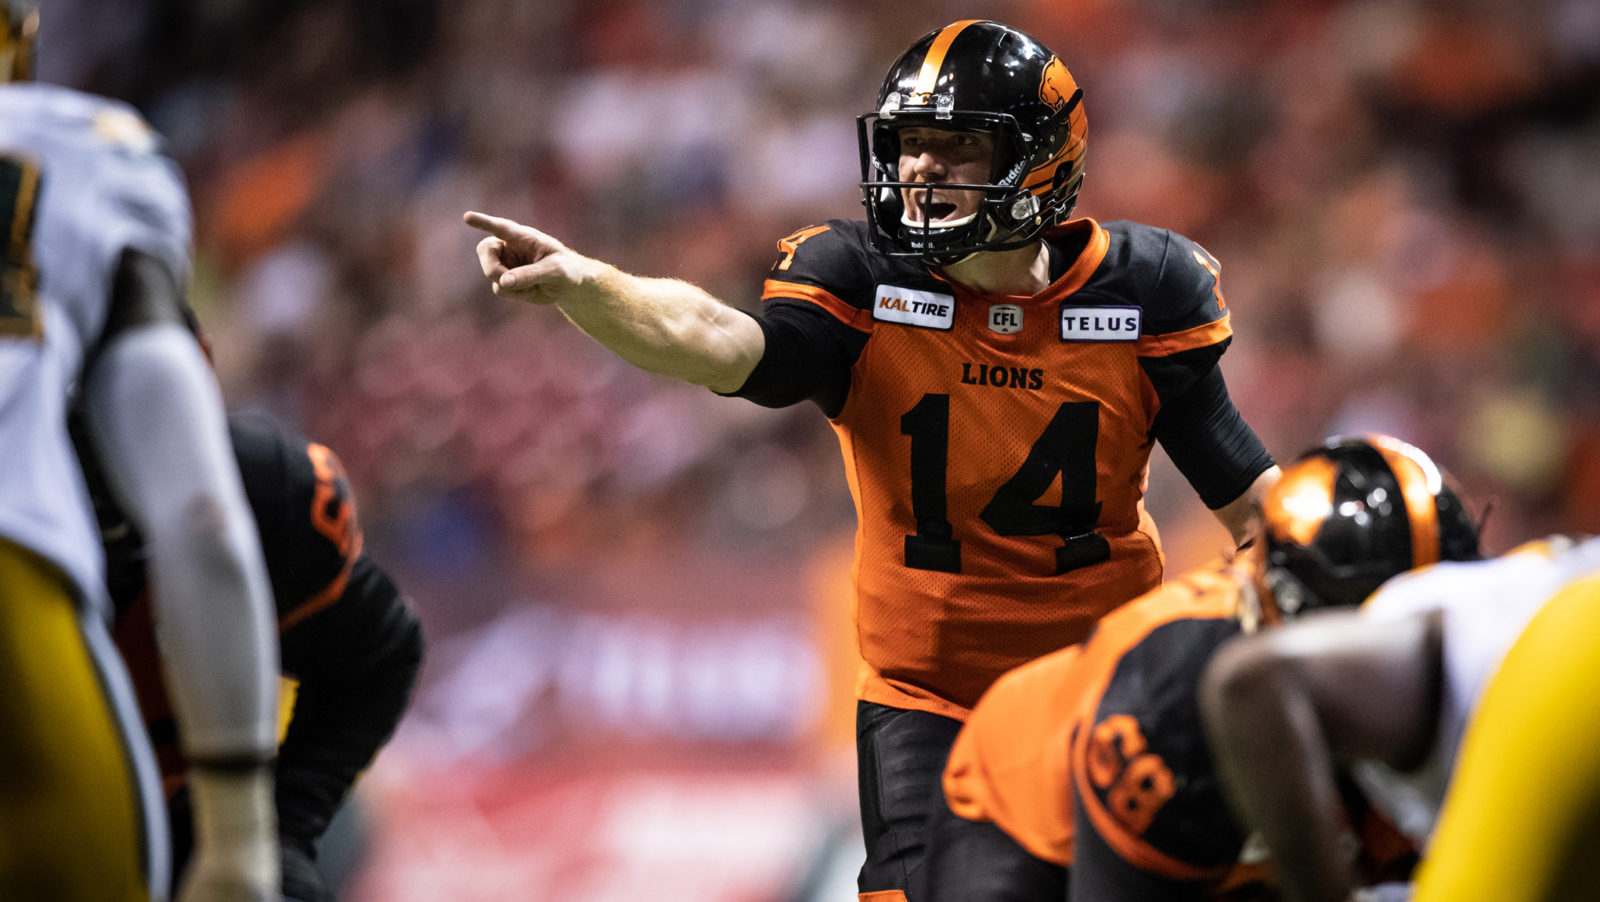 Call it a Comeback: Who will be the Travis Lulay of 2019?